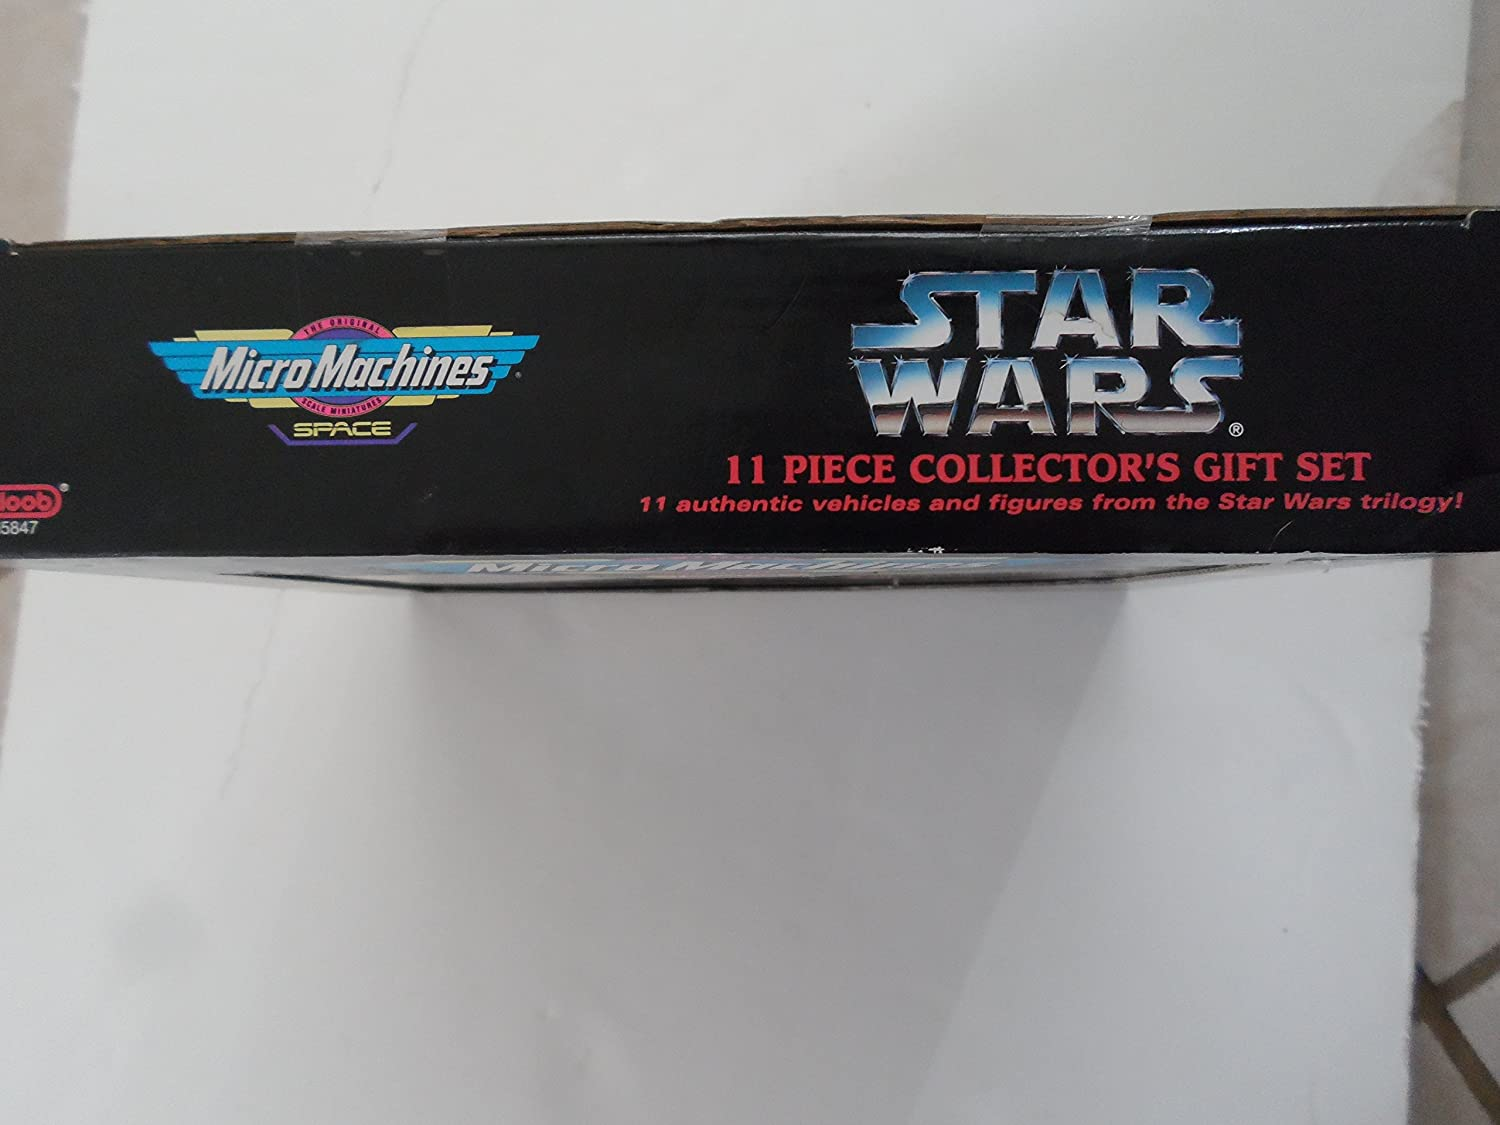 Amazon.com: Micro Machines Star Wars 11 Piece Collectors Gift Set: Toys & Games